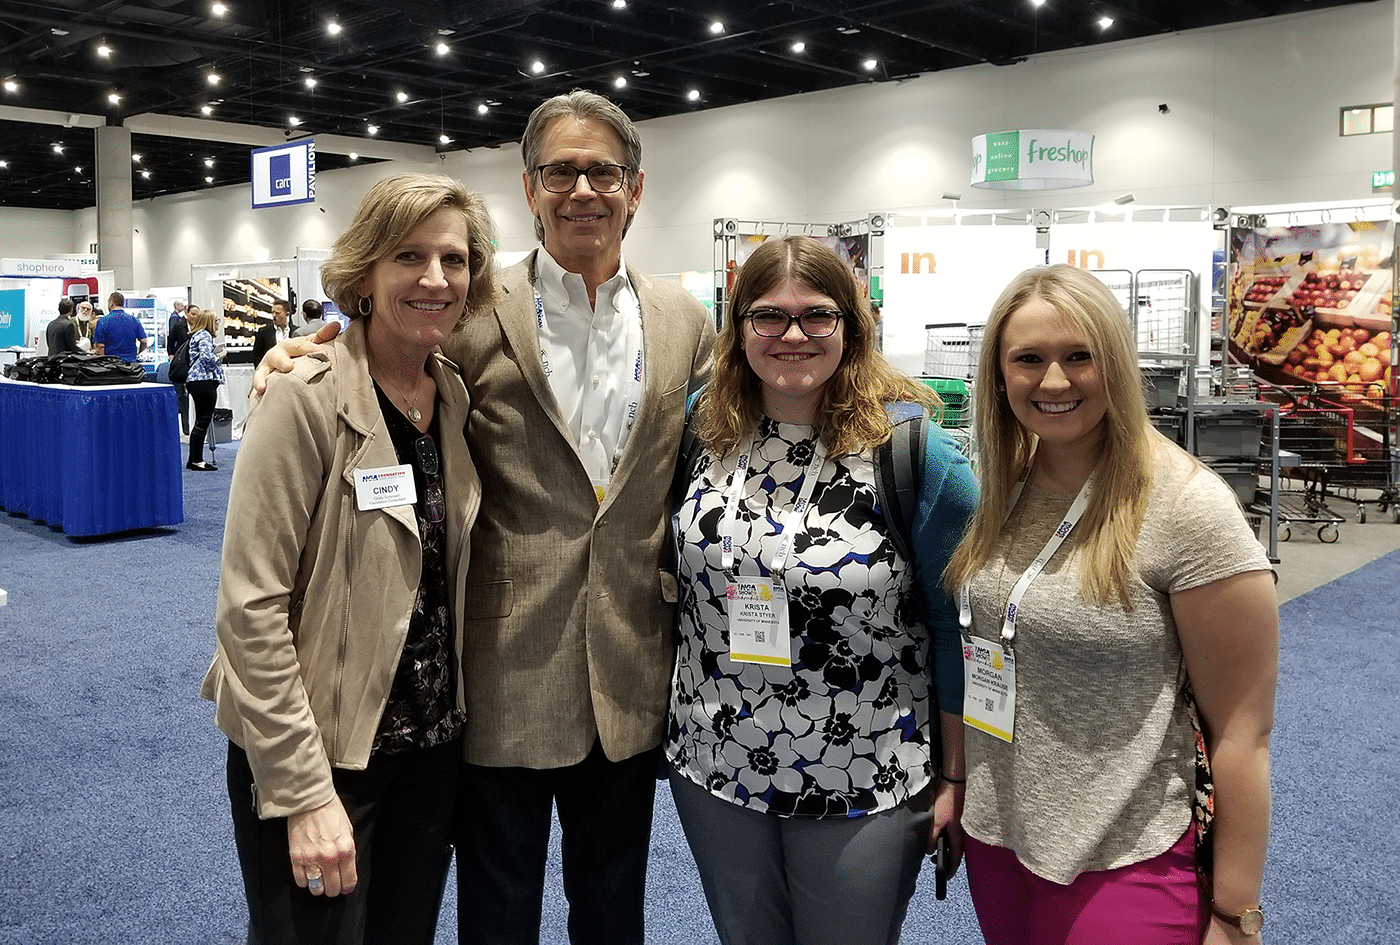 Cindy, Harold Lloyd and U of MN students at NGA show